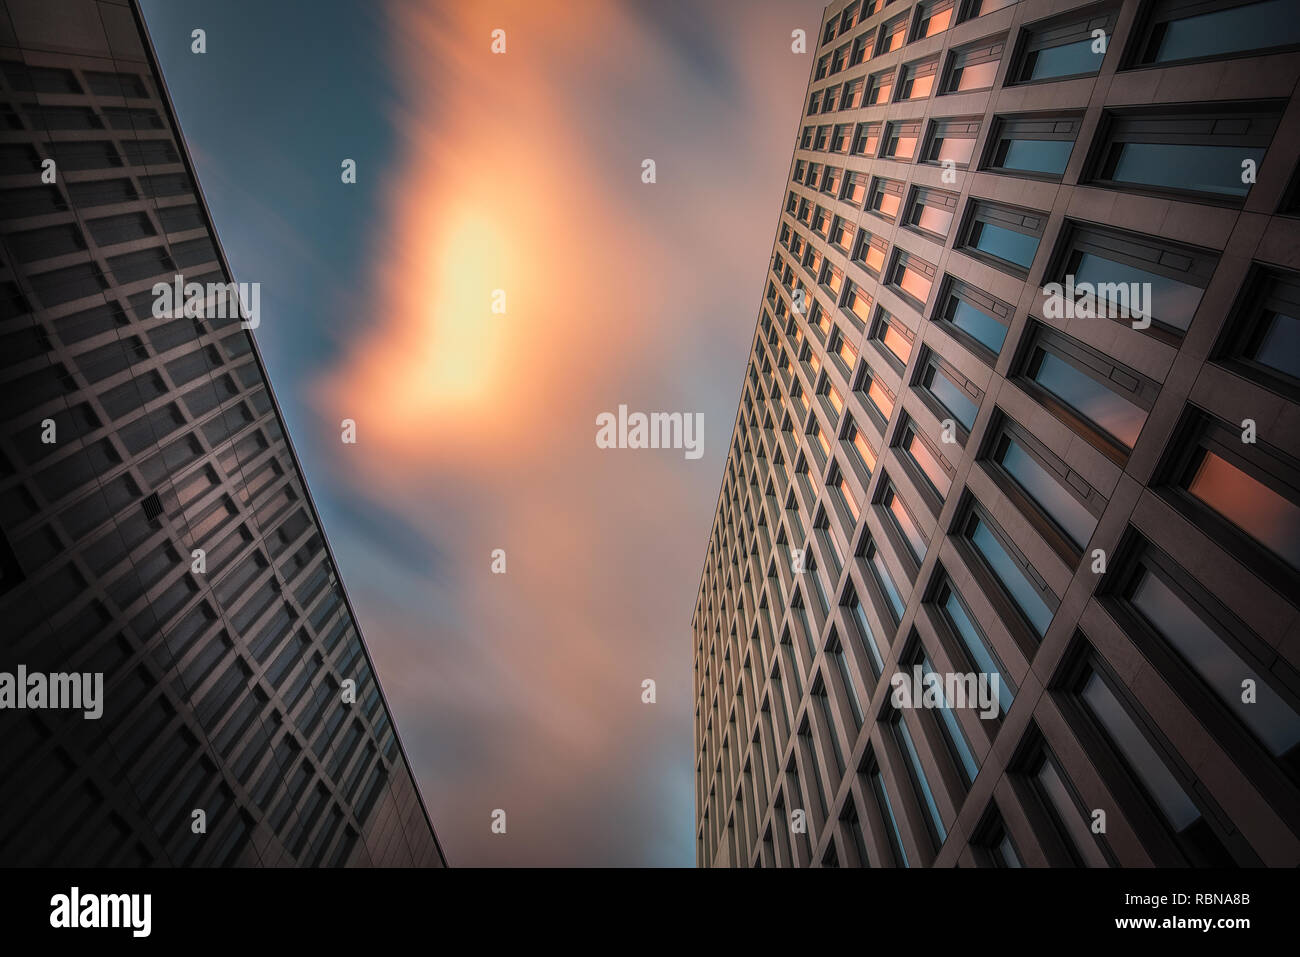 Office buildings in hanover, germany Stock Photo